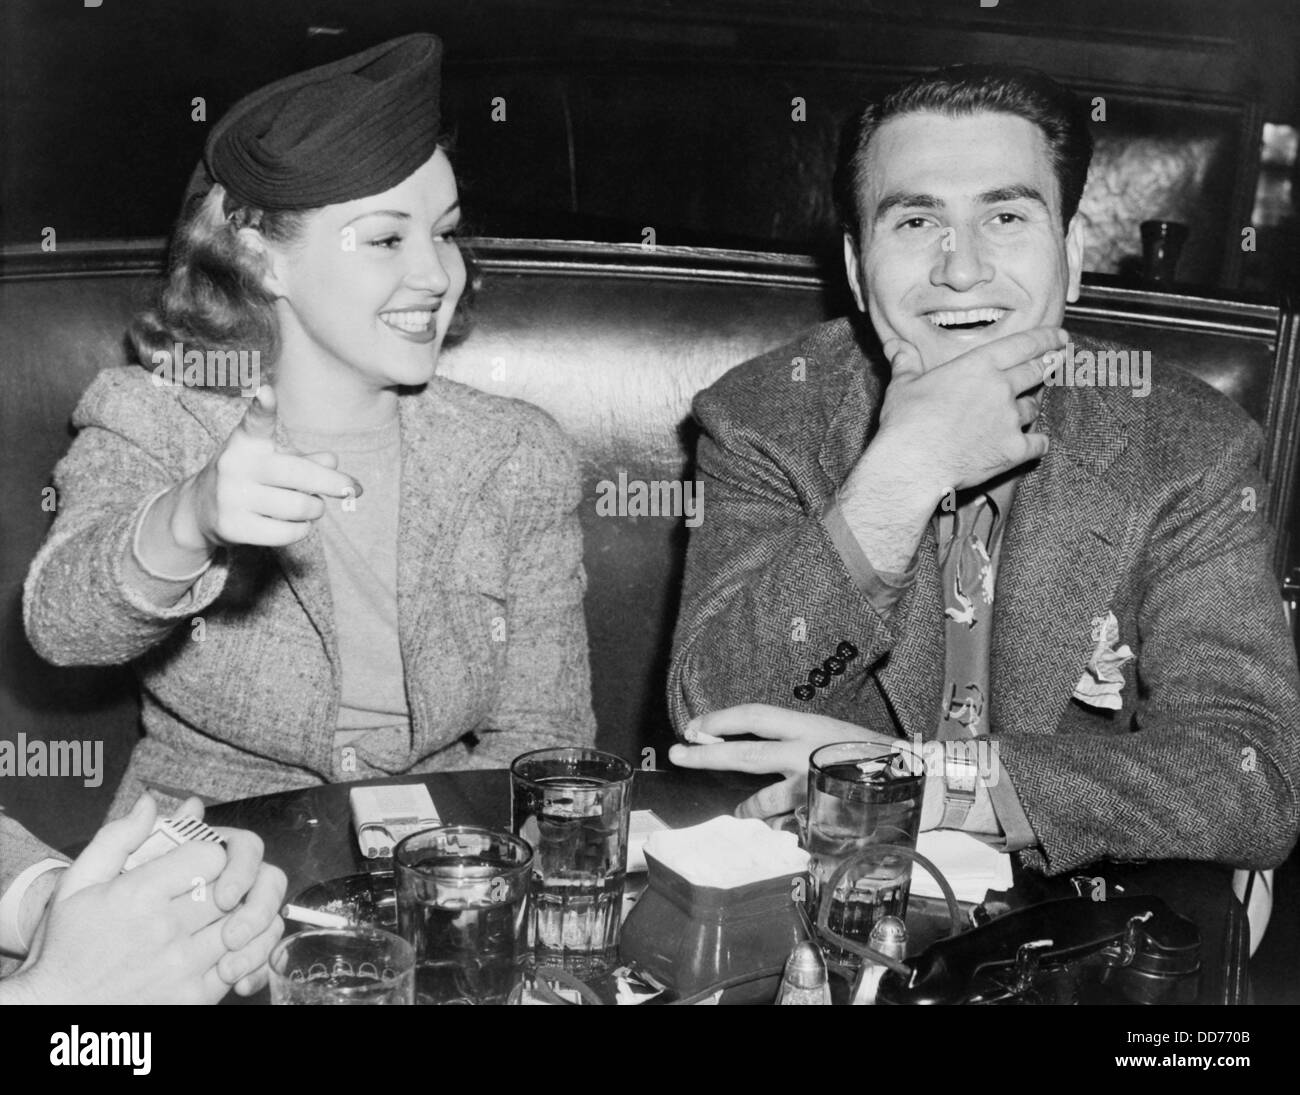 Artie Shaw Marriages Actress Betty Grable And Bandleader Artie Shaw On A Date Oct 12